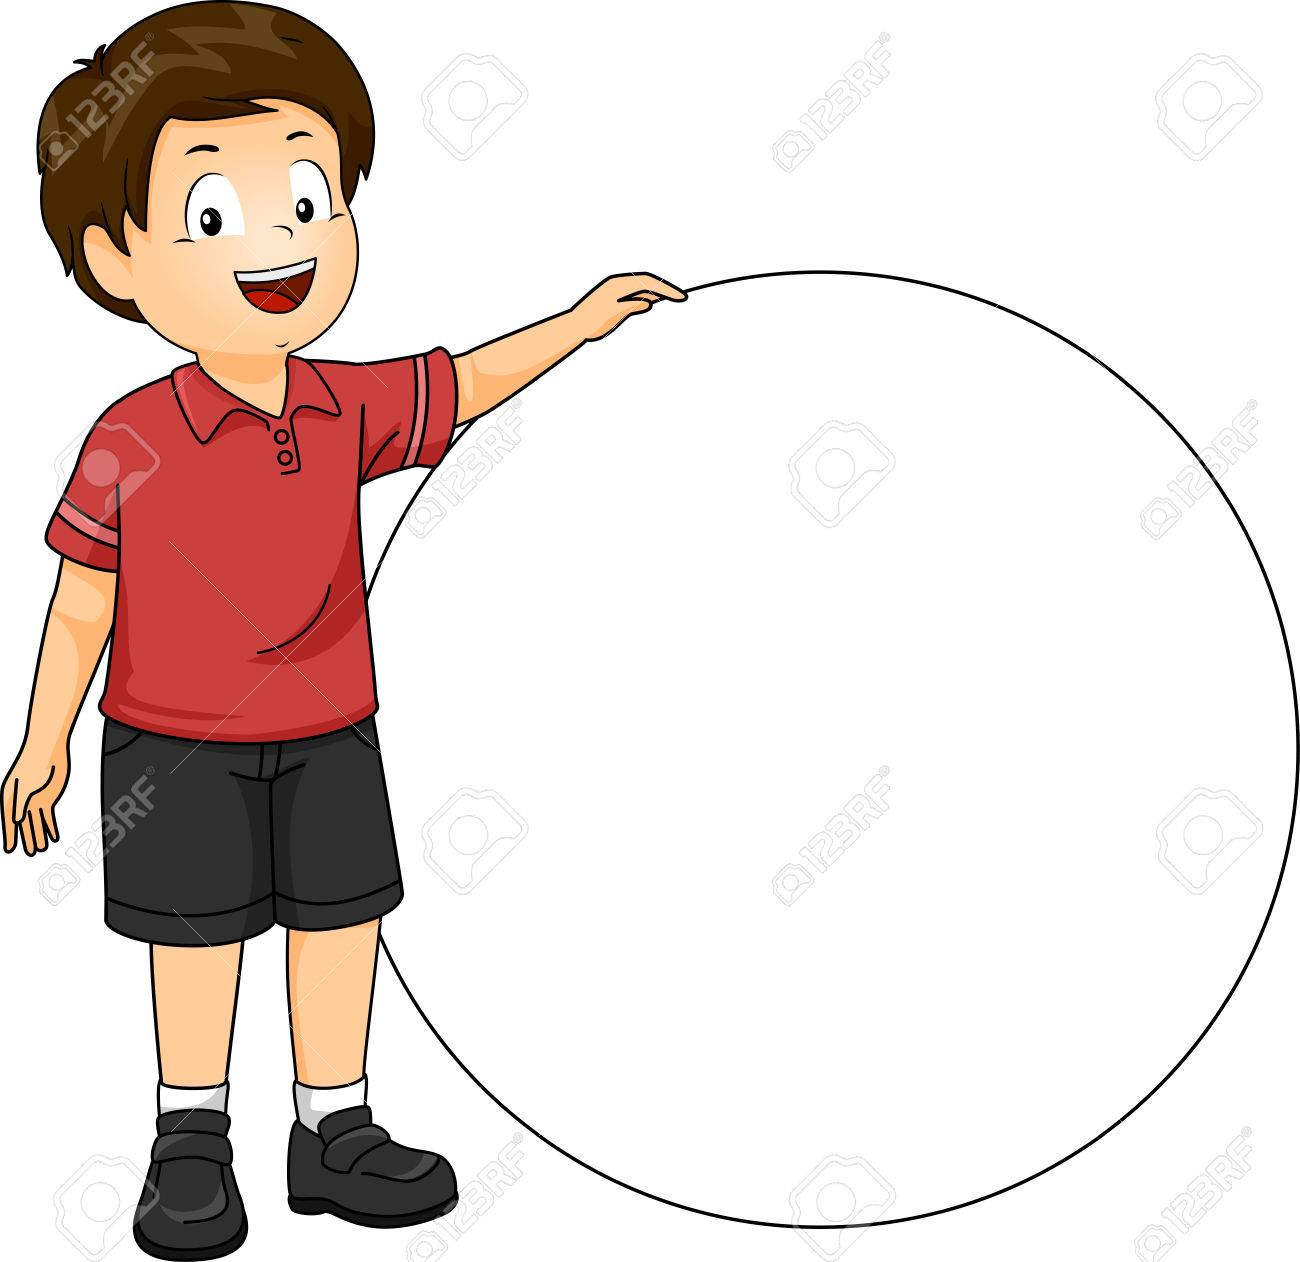 78fb95b3c Illustration of a Little Boy in a Red Polo Shirt and Black Shorts Standing  Beside a